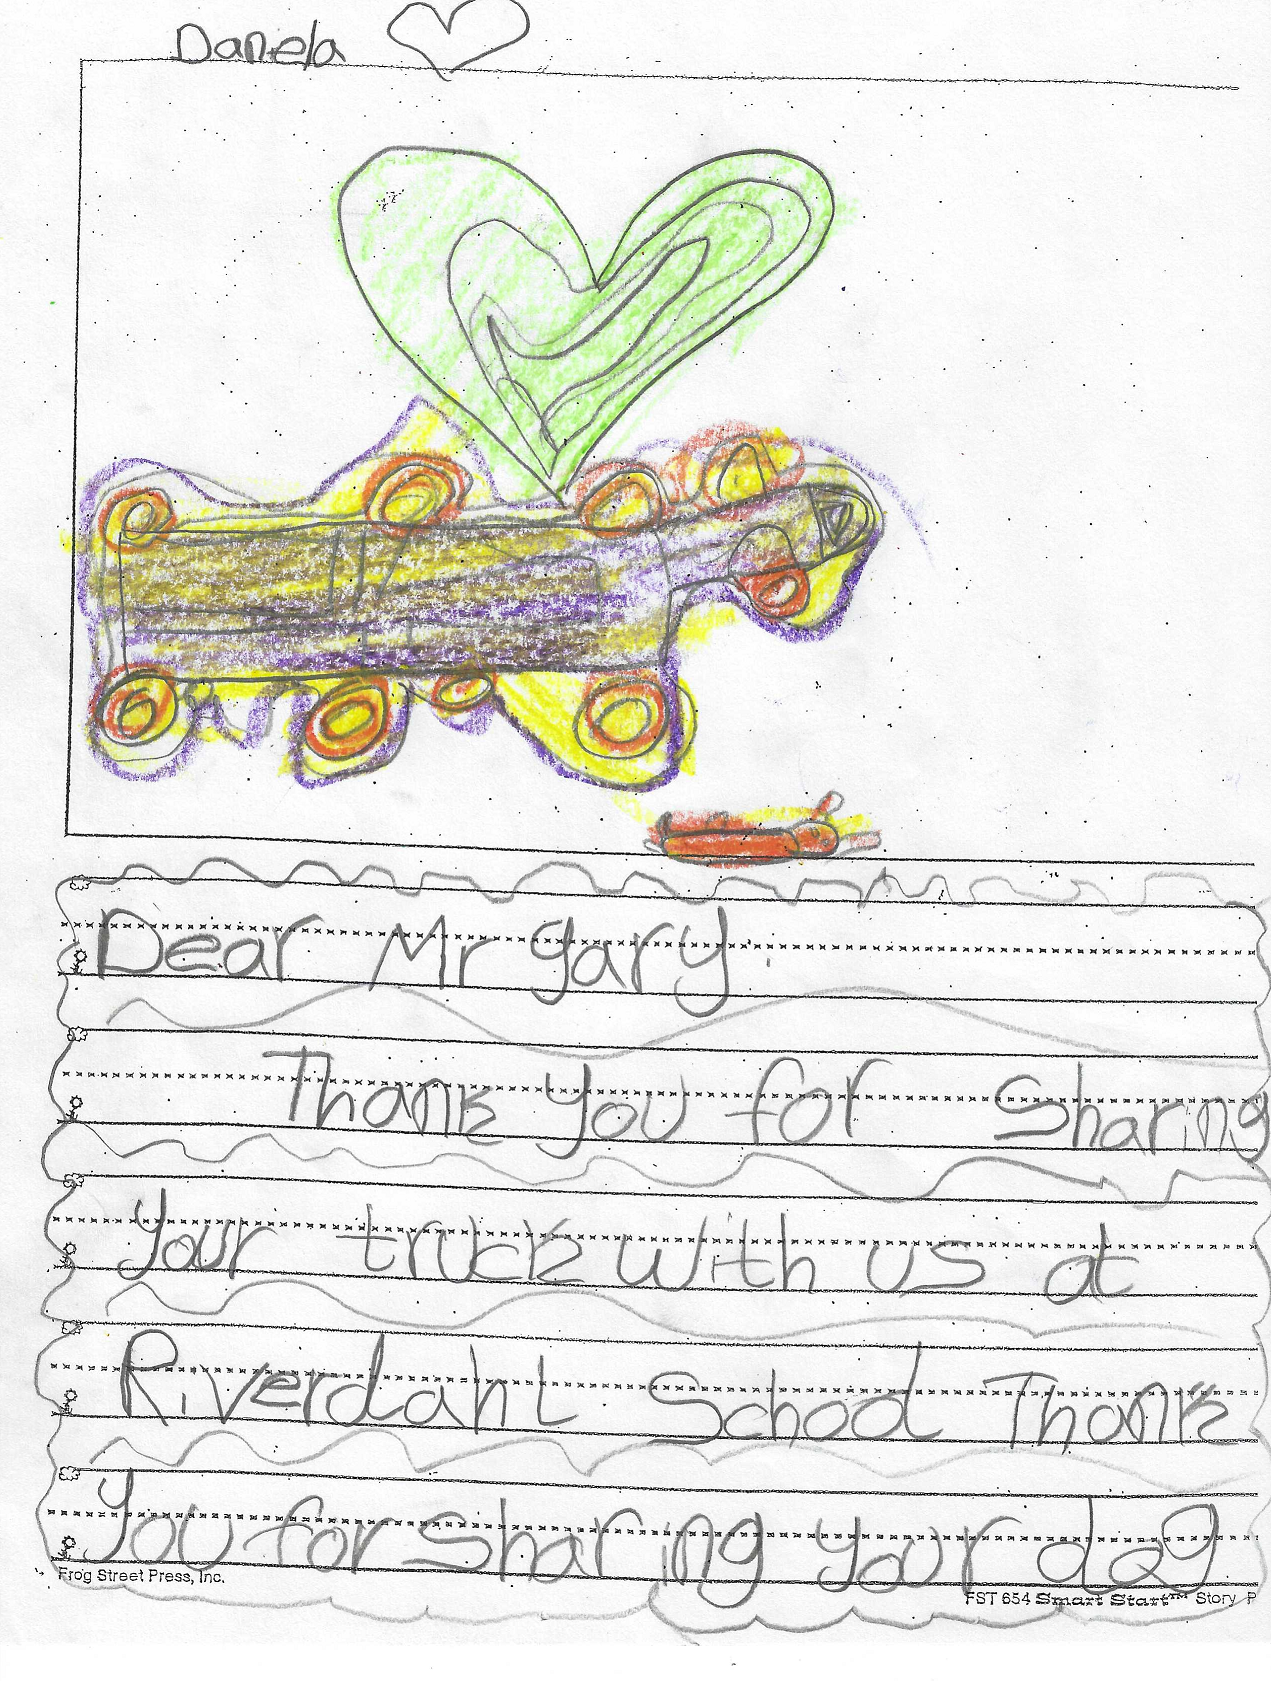 semi truck drawing and letter to Gary Buchs from kid